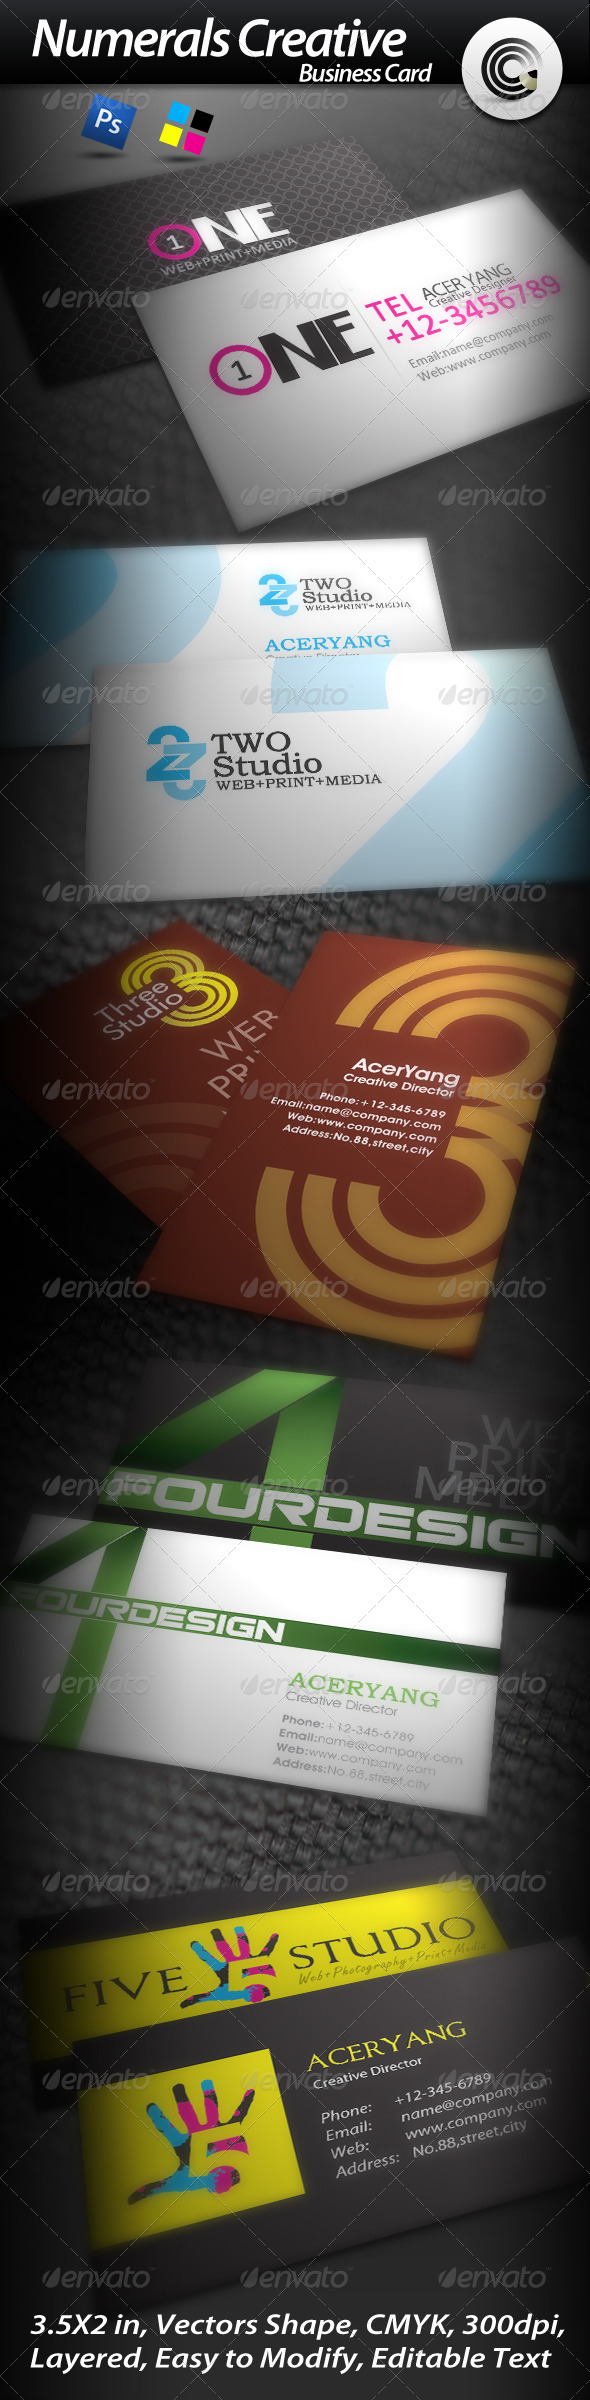 5 Sets Numerals Creative Business Card - Corporate Business Cards